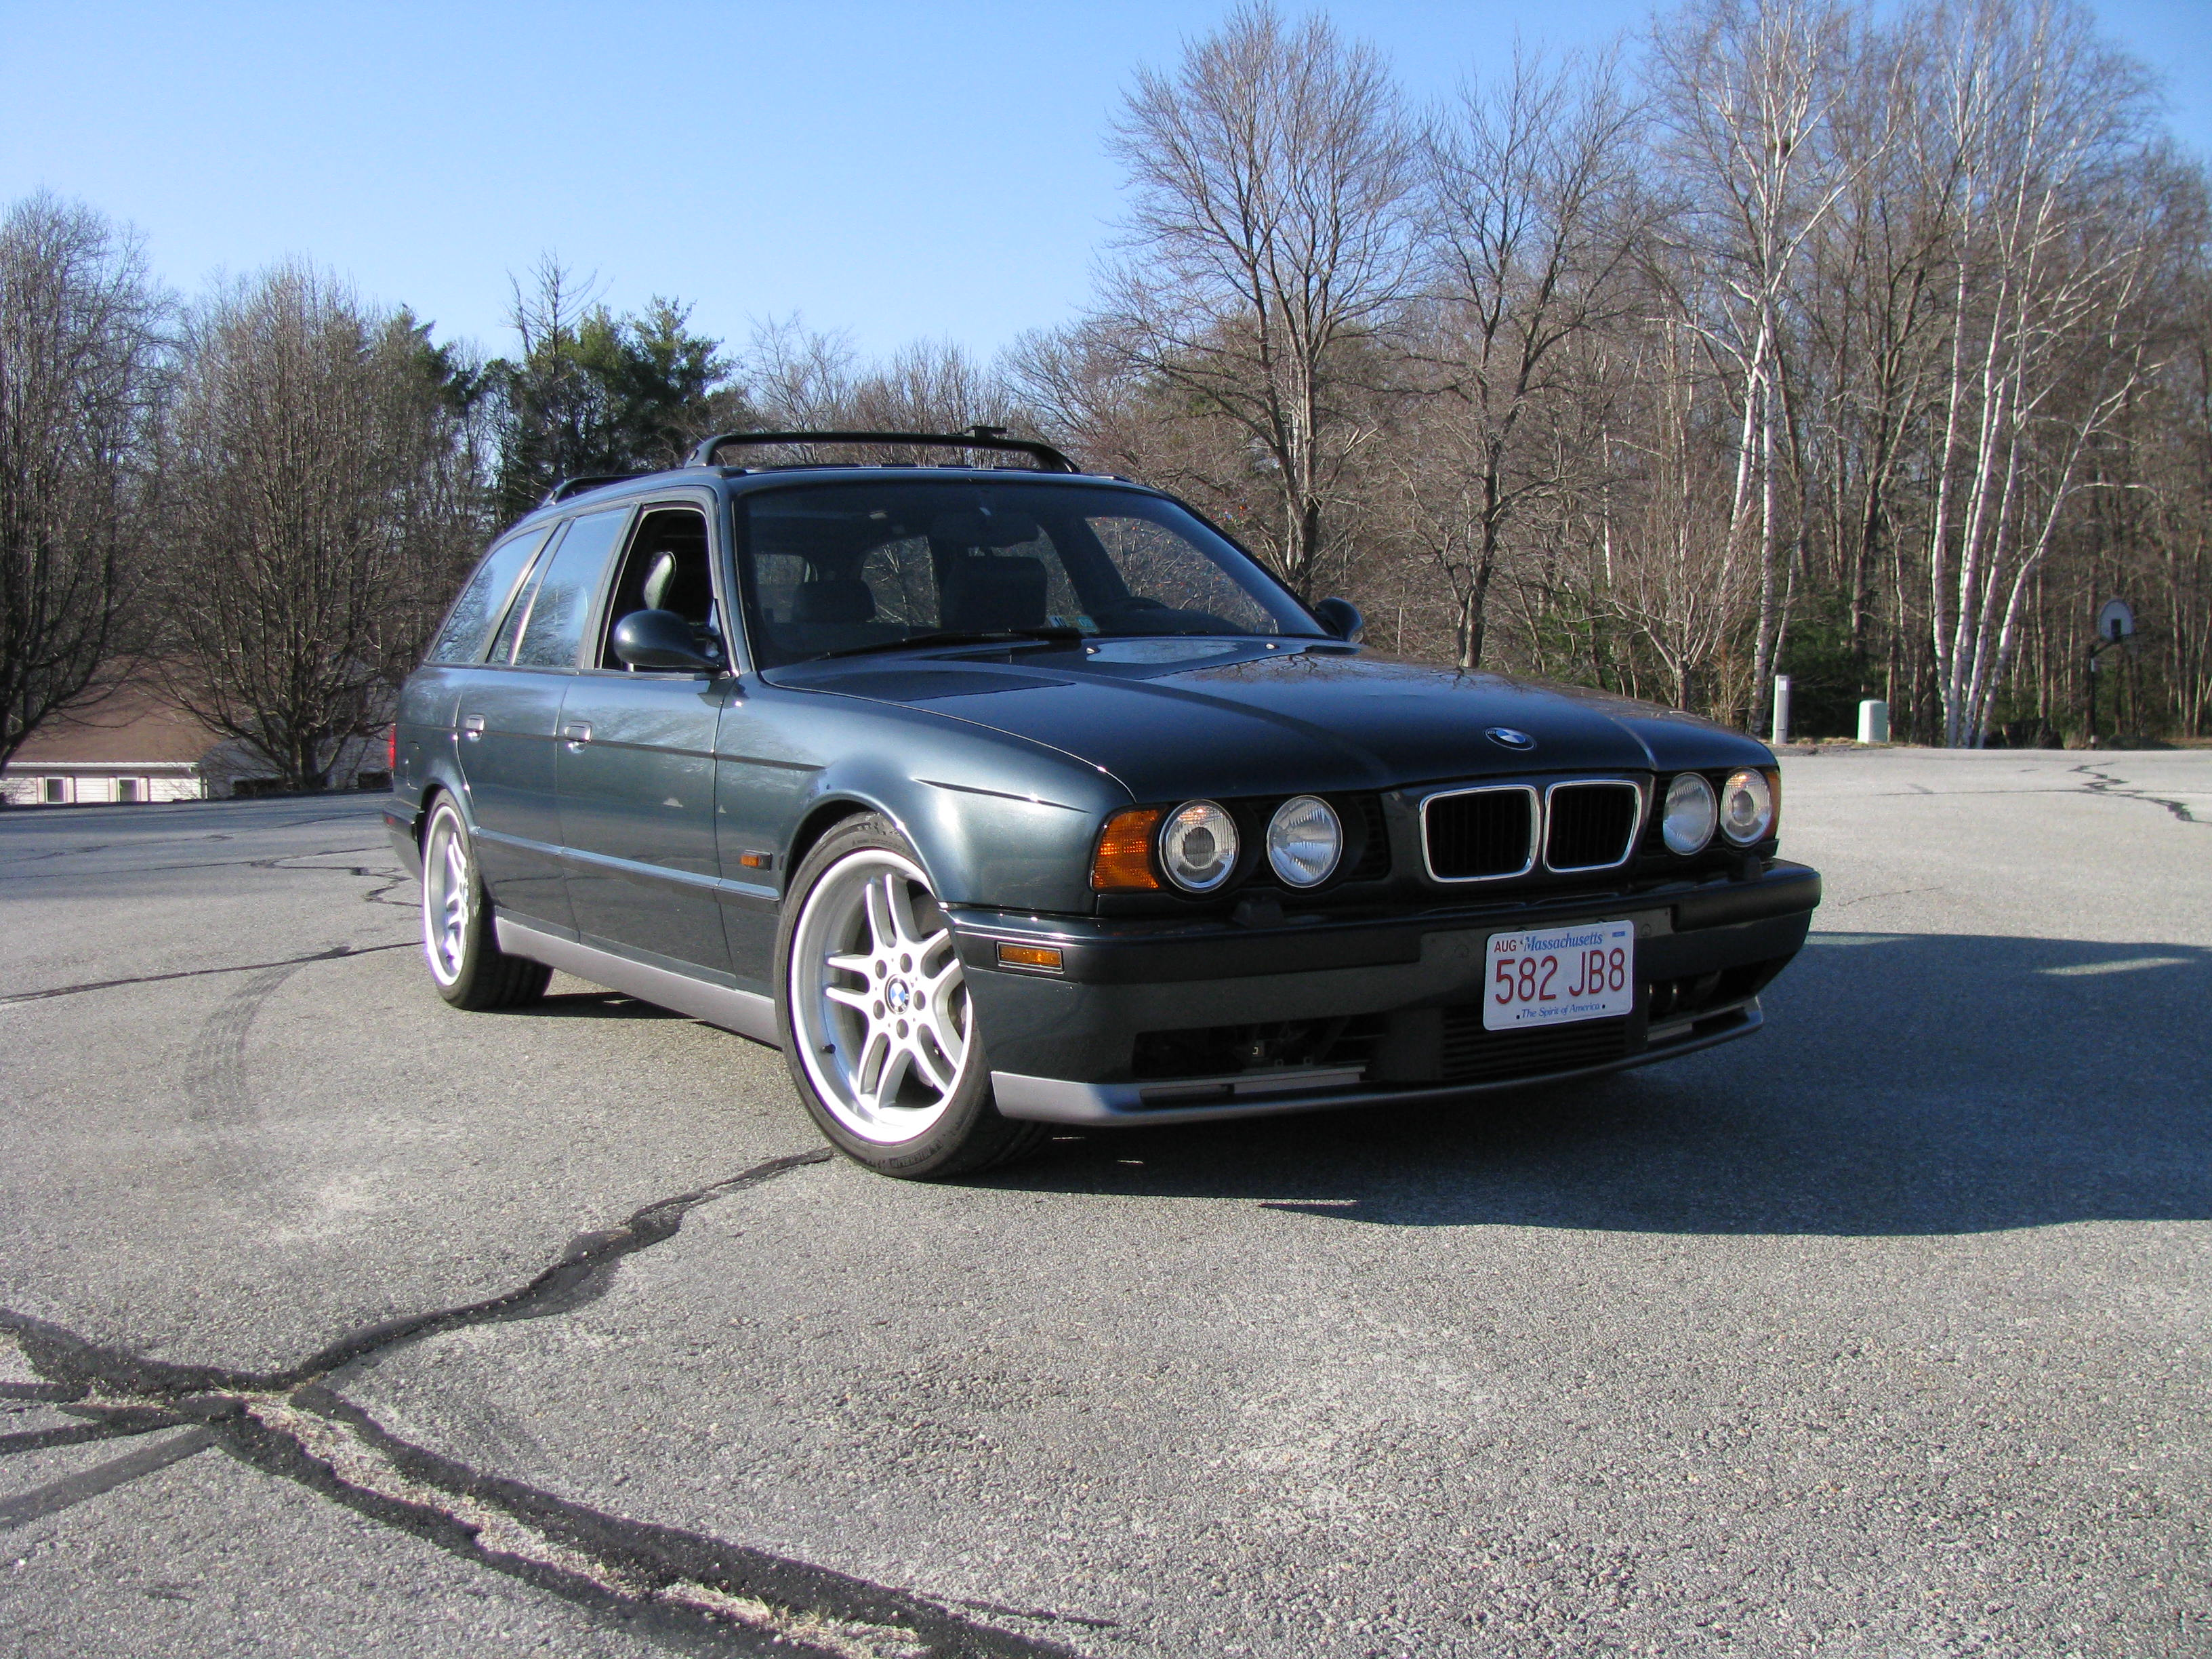 1995 Bmw M5 E34 Touring Wagon Supercharged German Cars